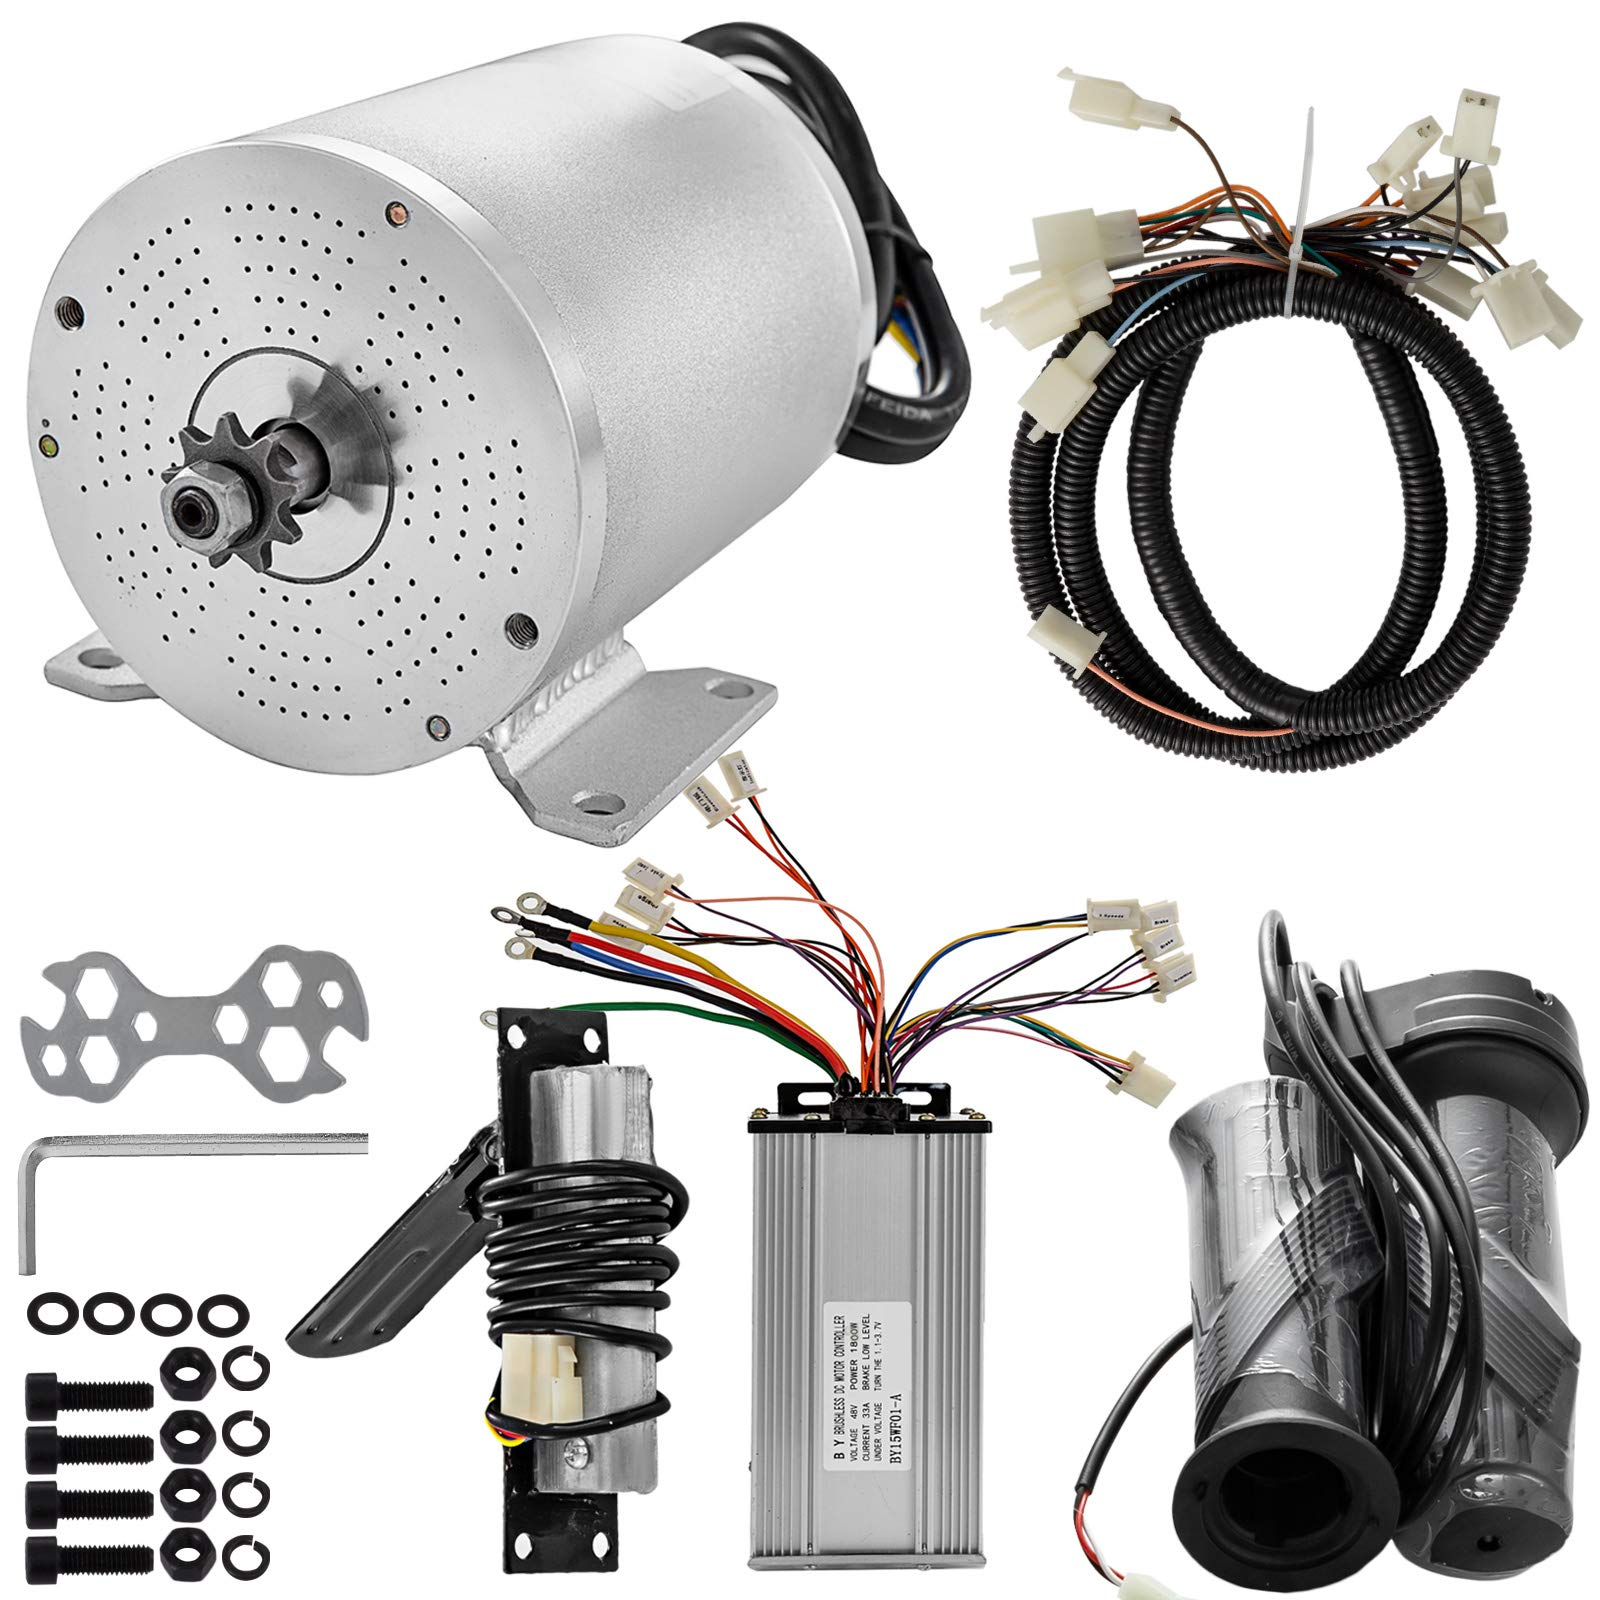 Mophorn Electric Brushless Motor 48V DC 1800 Watt with Controller & Handles & Wiring Harness 9 Tooth 8 Chain Sprocket and Mounting Bracket for Go Karts Scooters & E-Bike